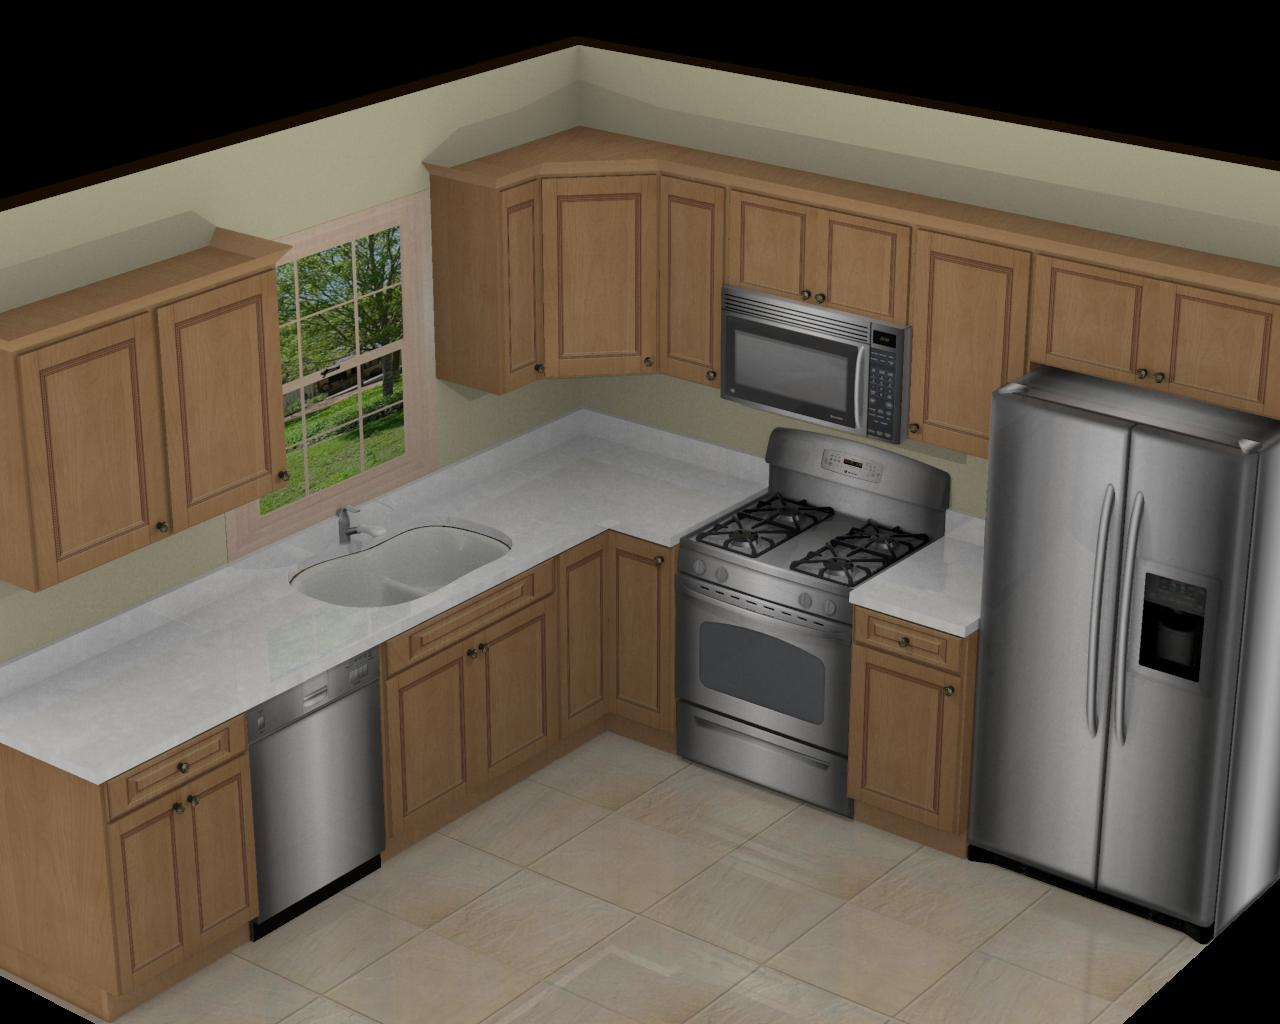 Foundation dezin decor 3d kitchen model design for Kitchen renovation styles